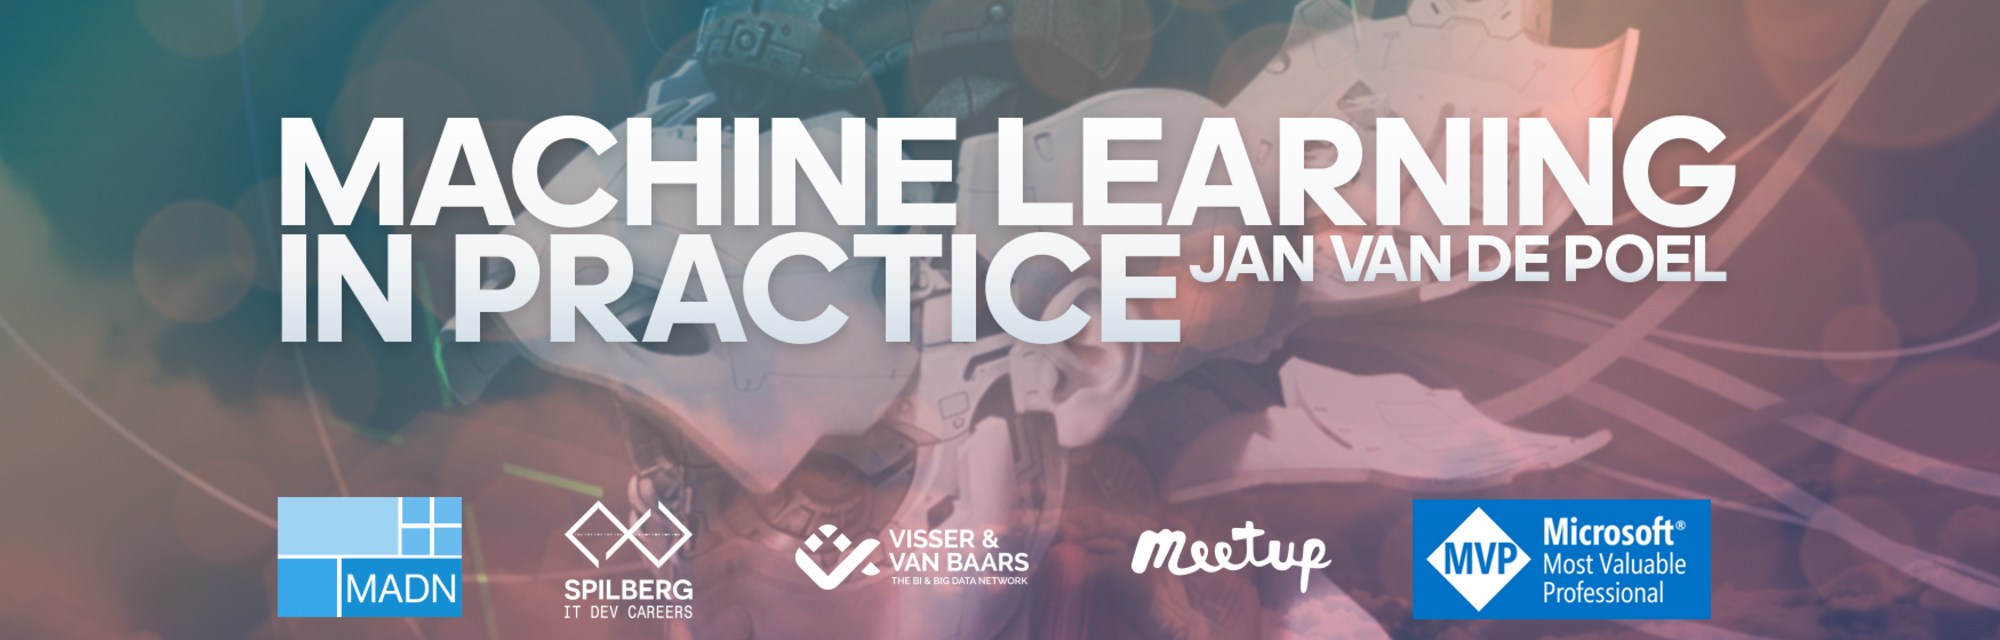 Machine learning event